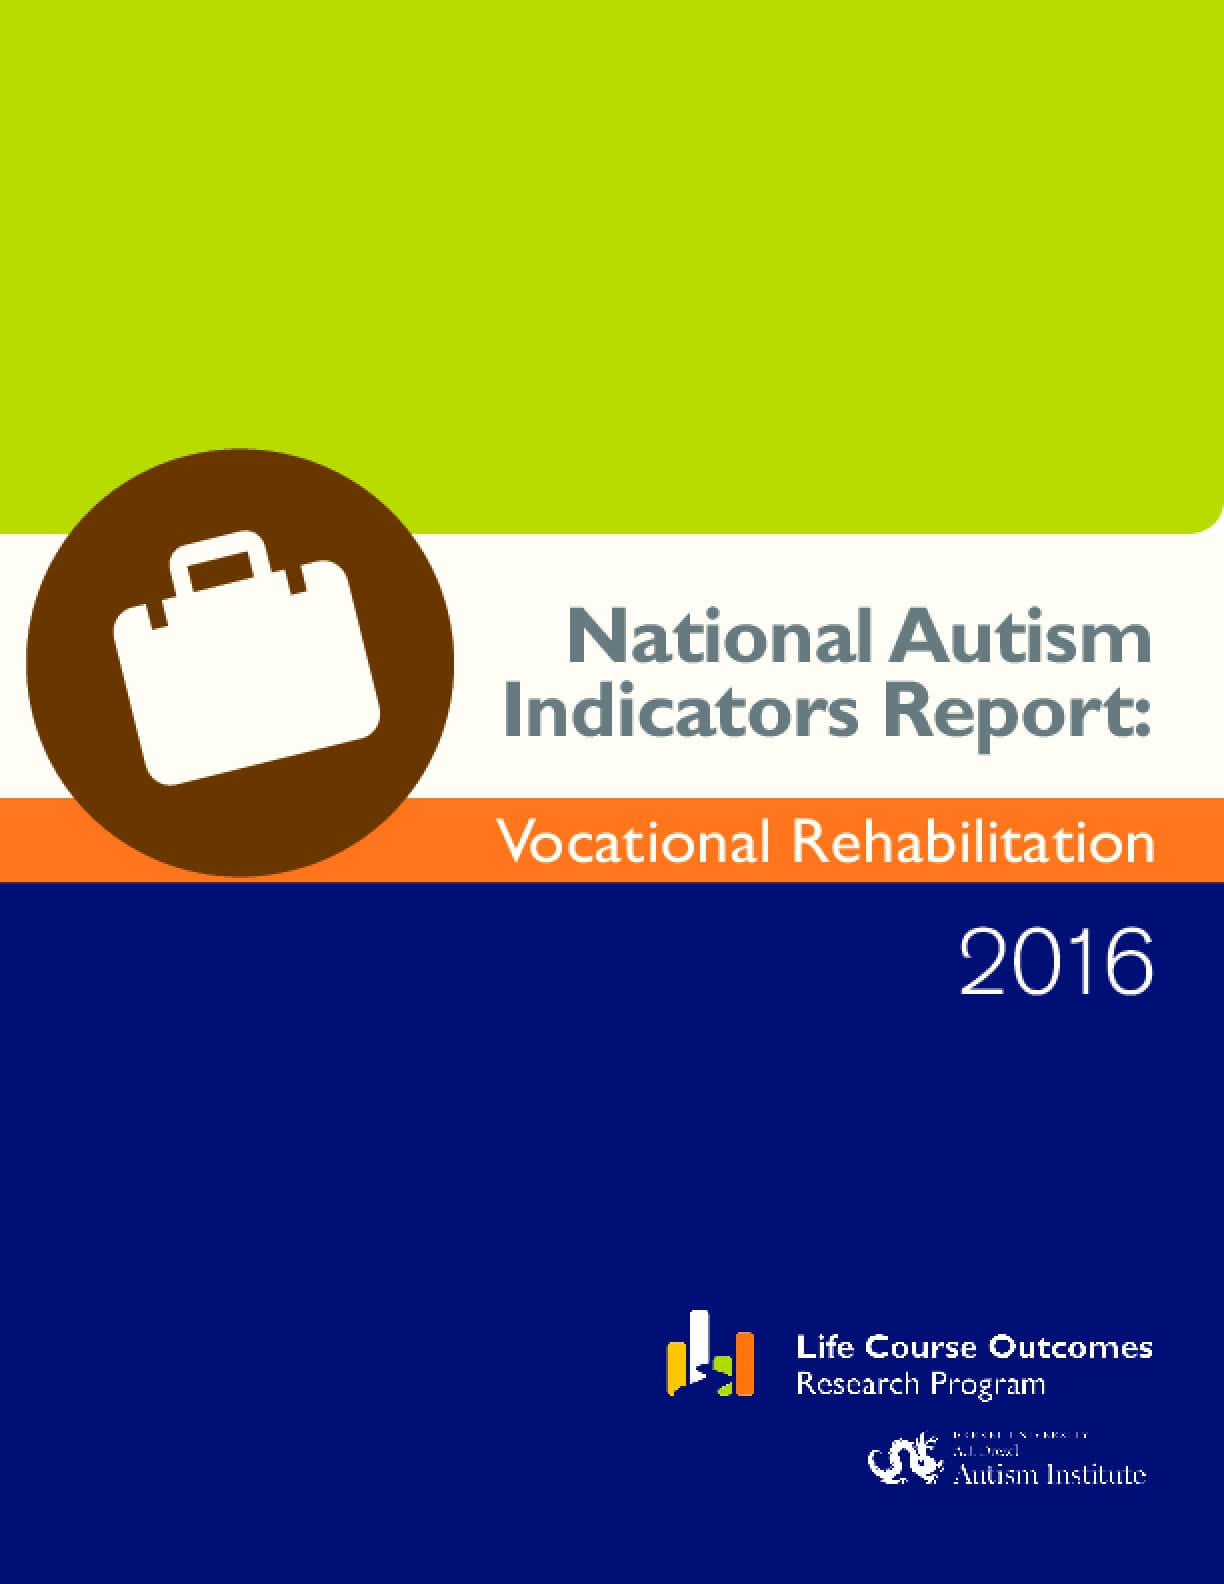 National Autism Indicators Report: Vocational Rehabilitation 2016